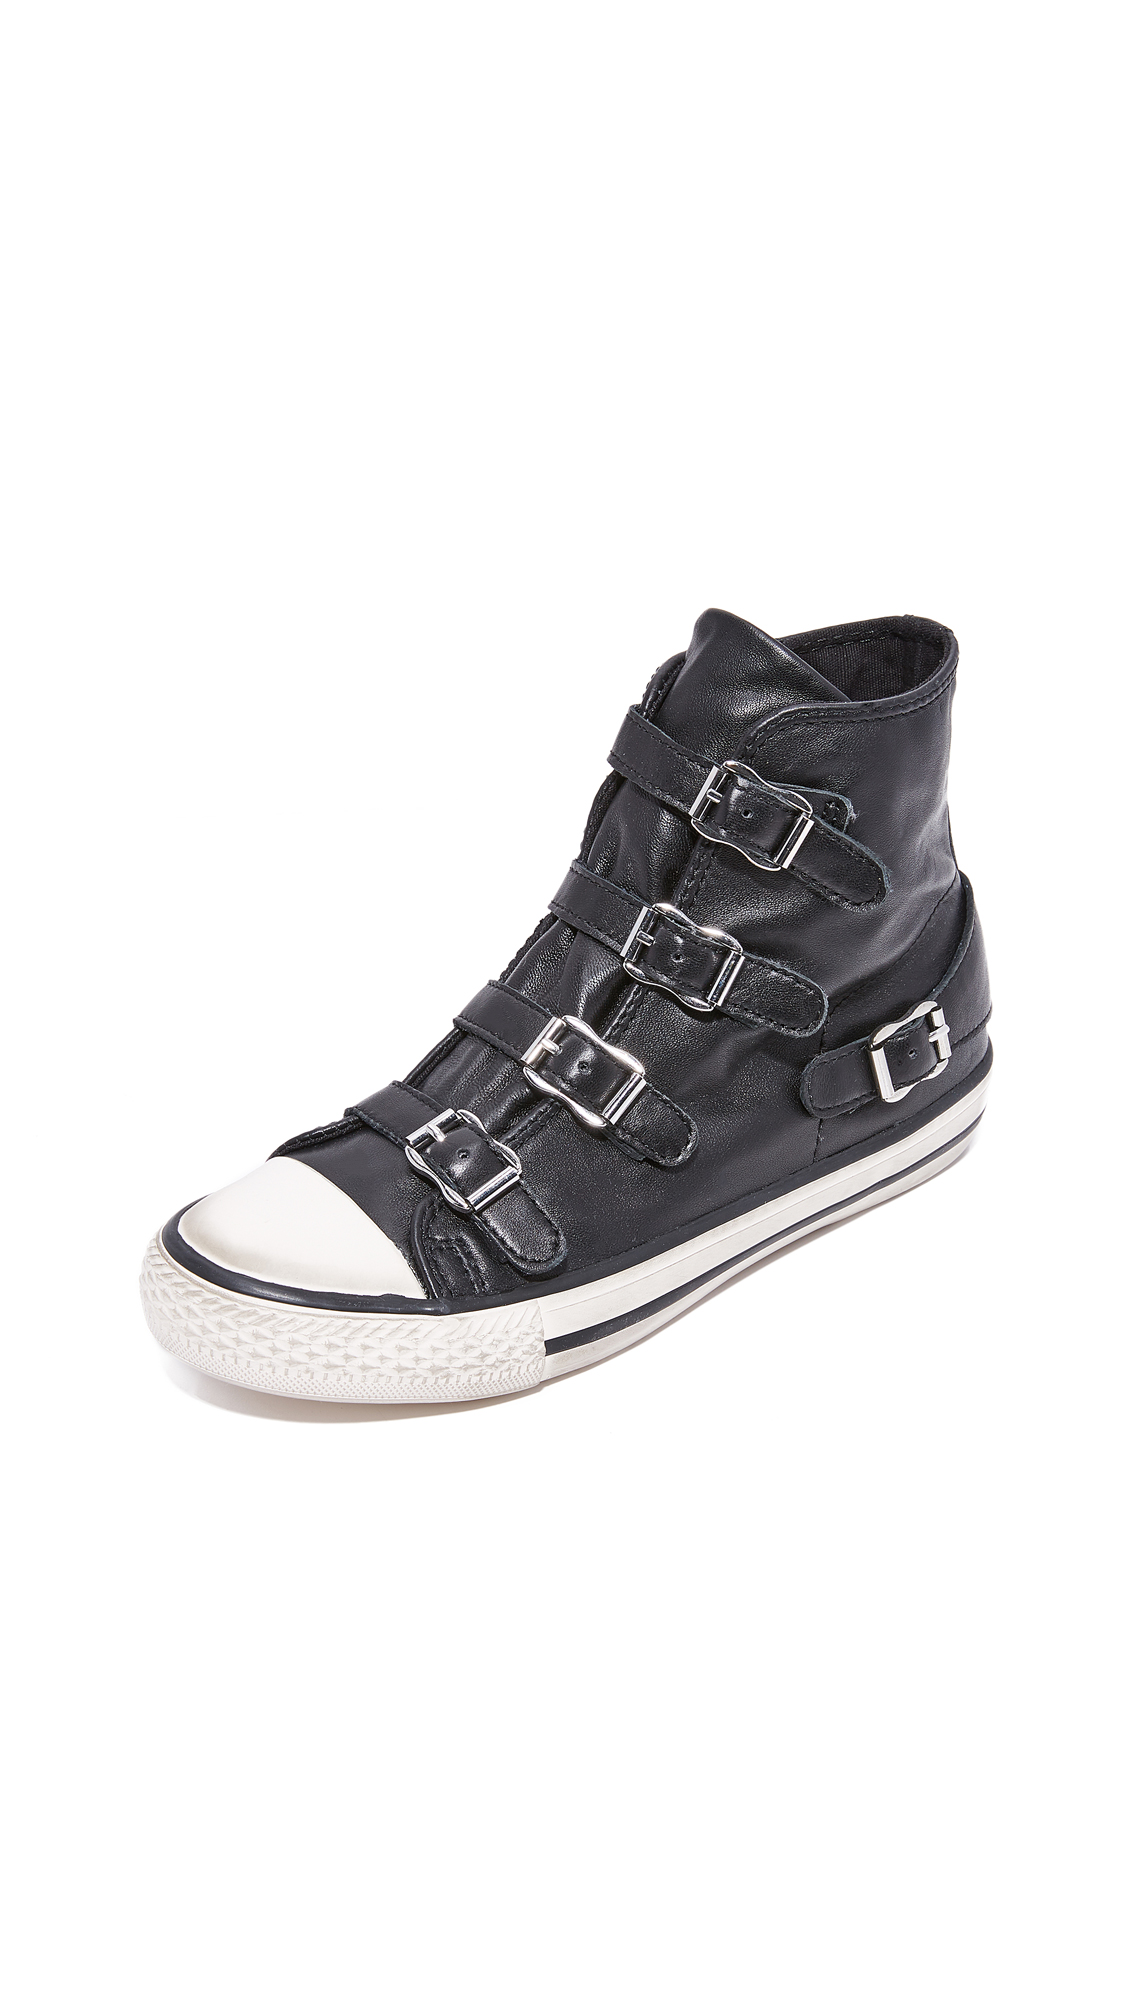 Ash Virgin Buckled High Top Sneakers - Black